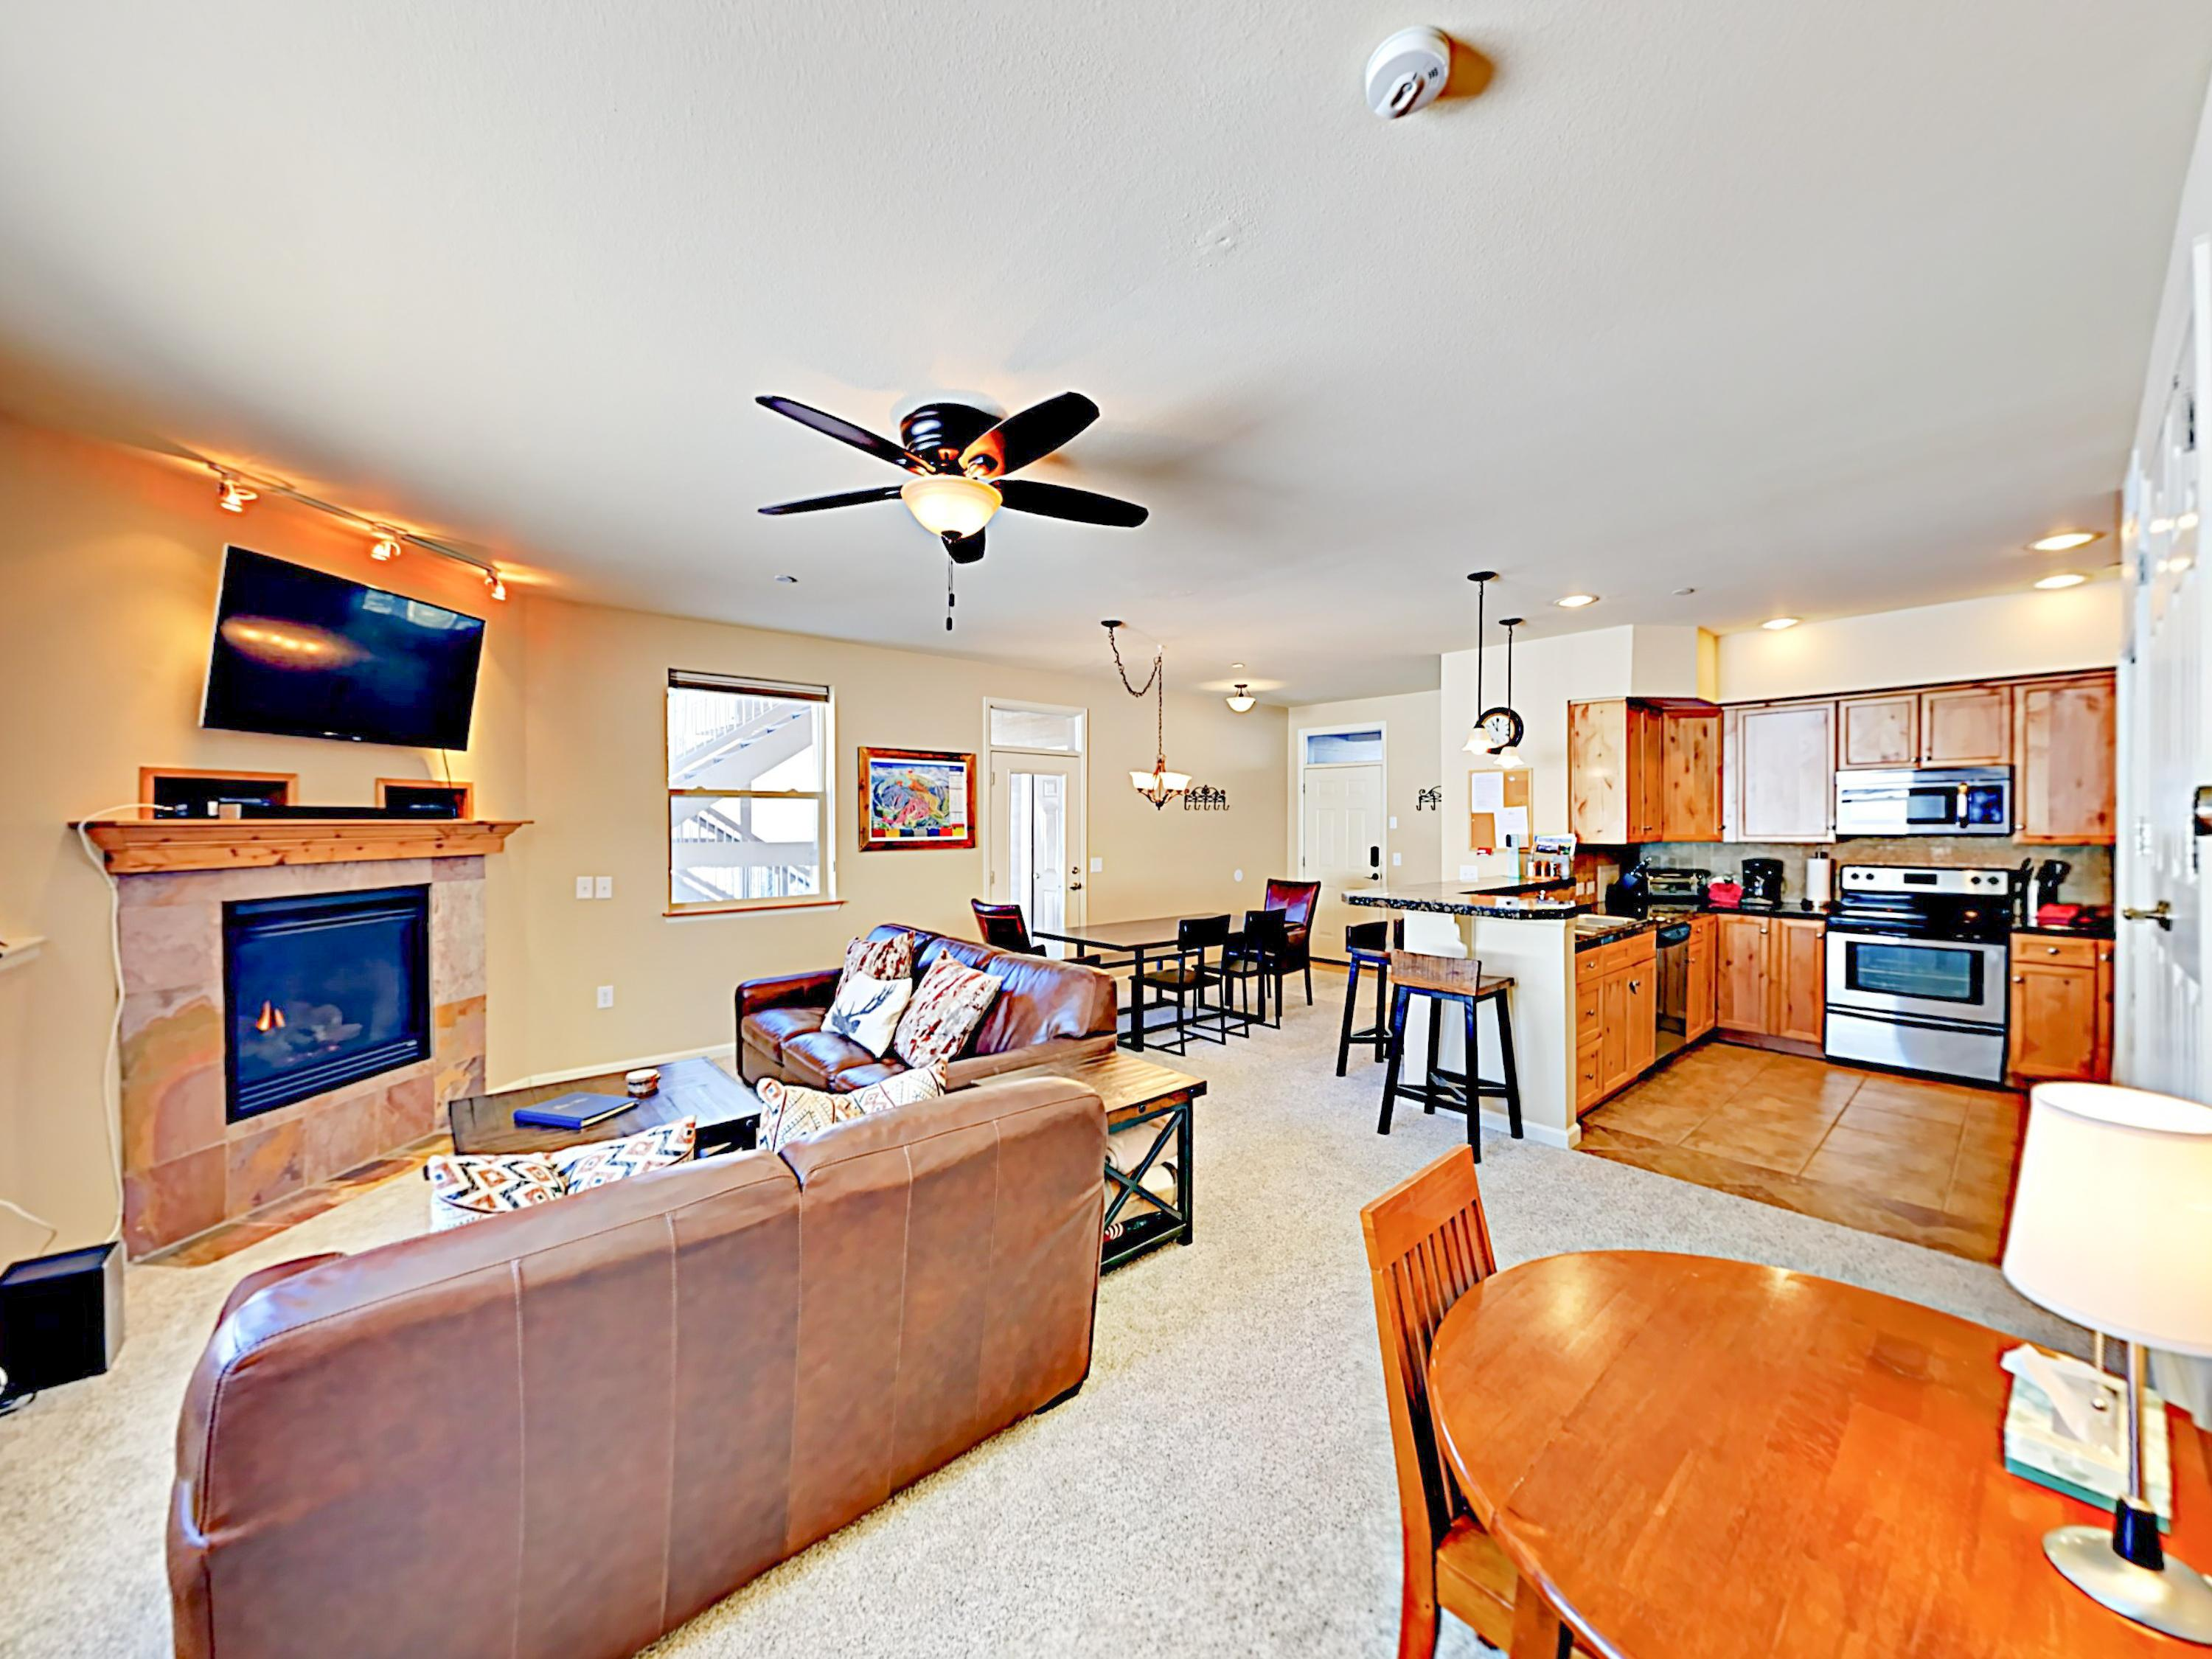 Welcome! This condo is professionally managed by TurnKey Vacation Rentals.